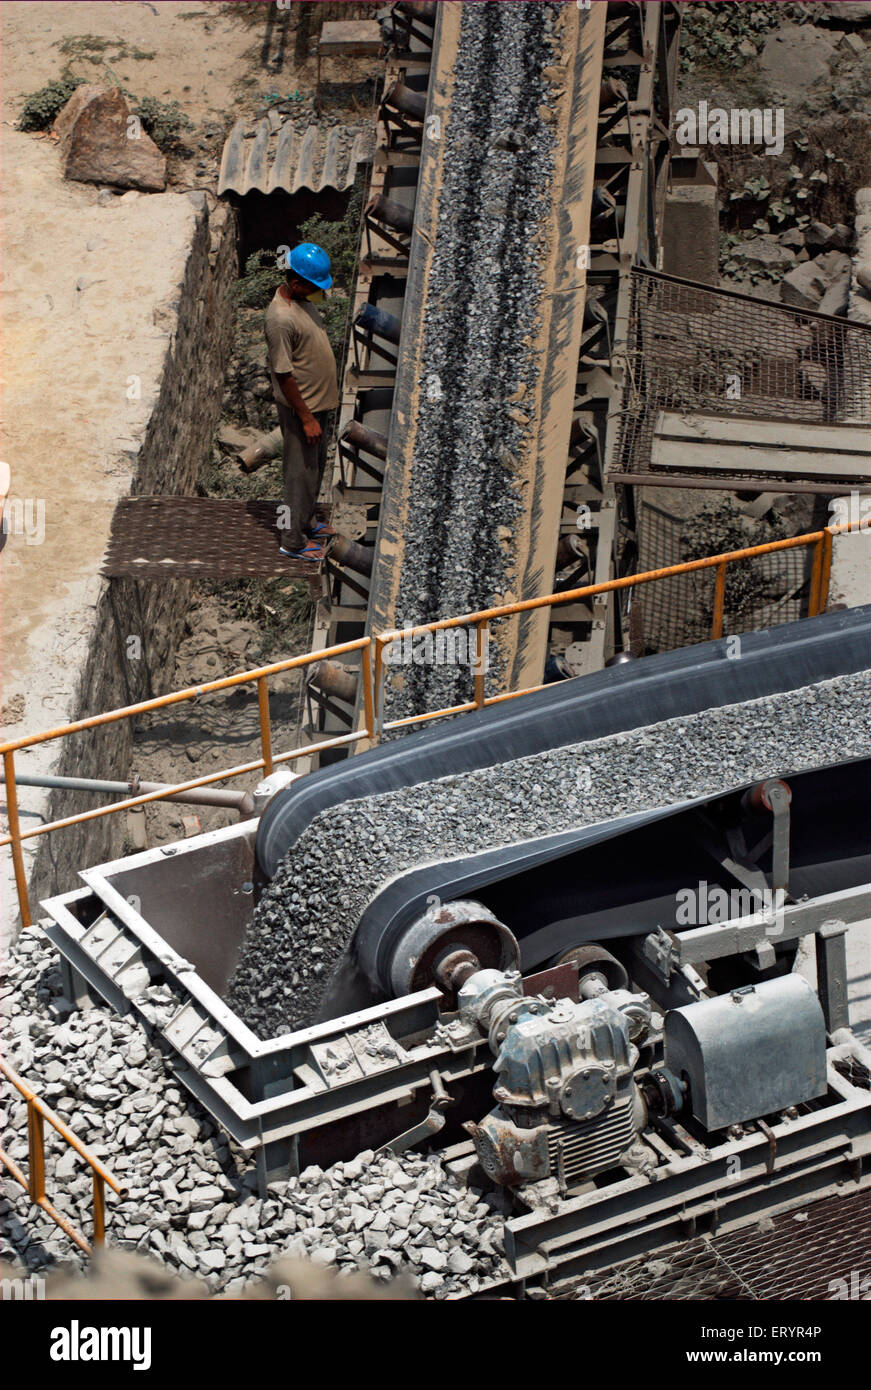 Worker inspecting crushed stones on conveyor belt on bypass site ; Madras Chennai ; Tamil Nadu ; India 17 July 2008 - Stock Image